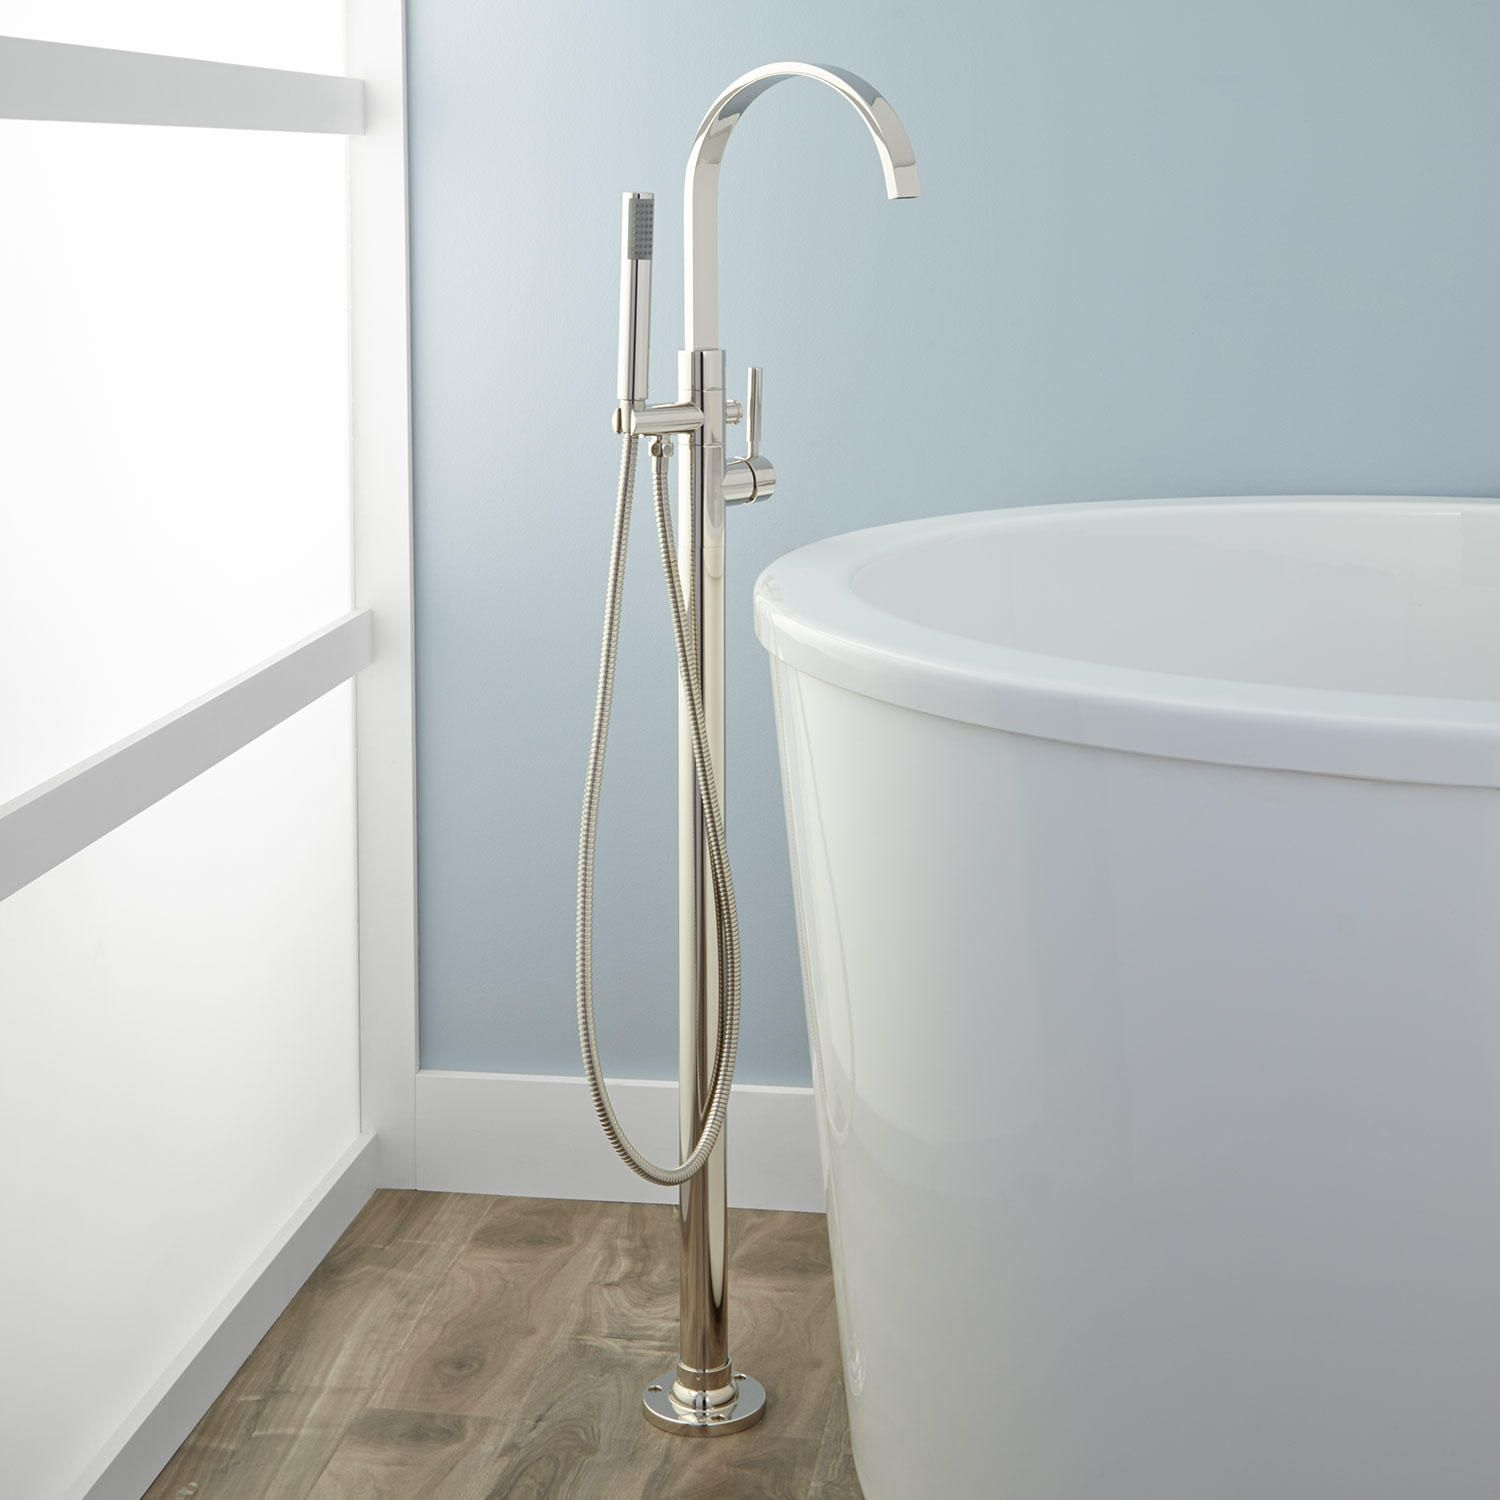 Benkei Freestanding Tub Faucet and Hand Shower | Pinterest ...